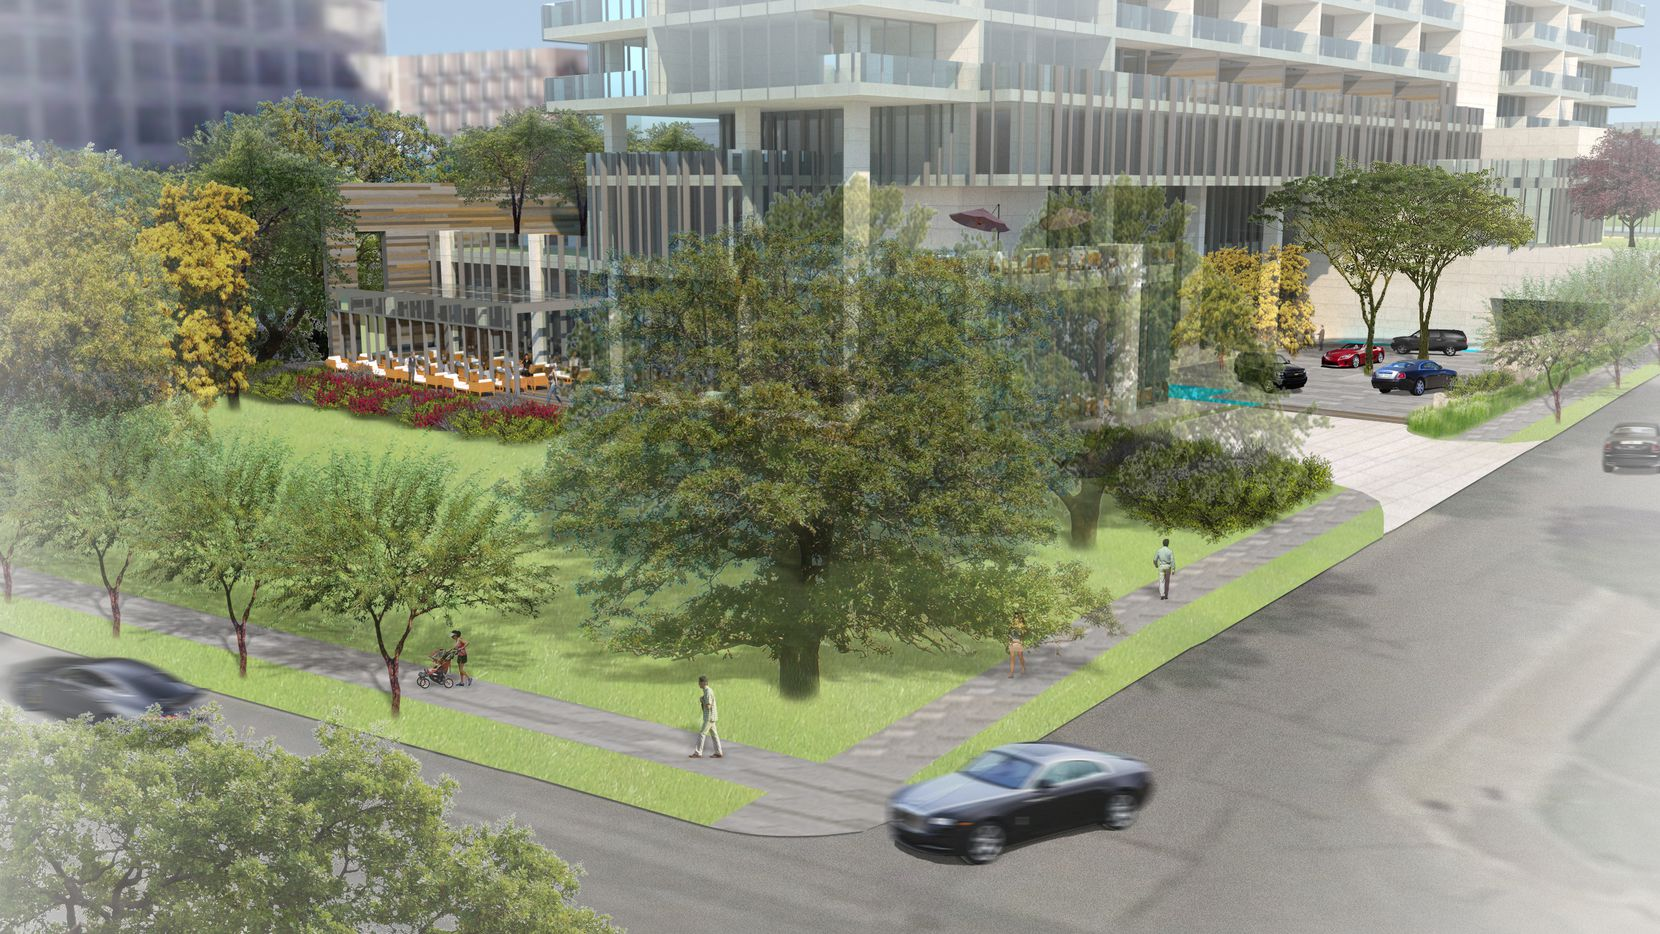 Dallas' JMJ Development is planning a high-rise hotel and residential building on the site.